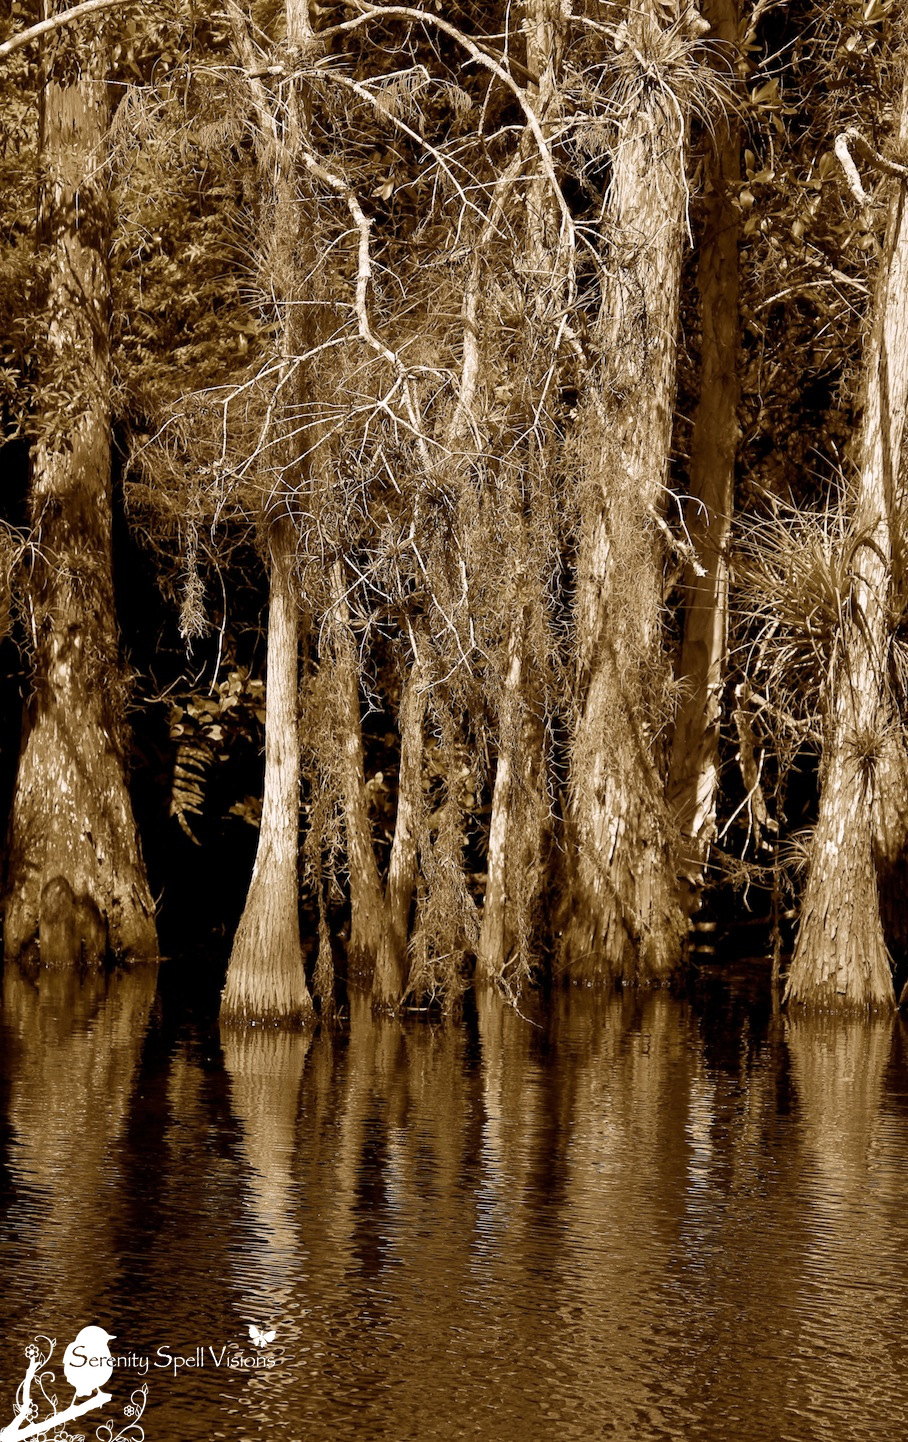 Cypress Trees Along the Owahee Trail in Grassy Waters Preserve, FL